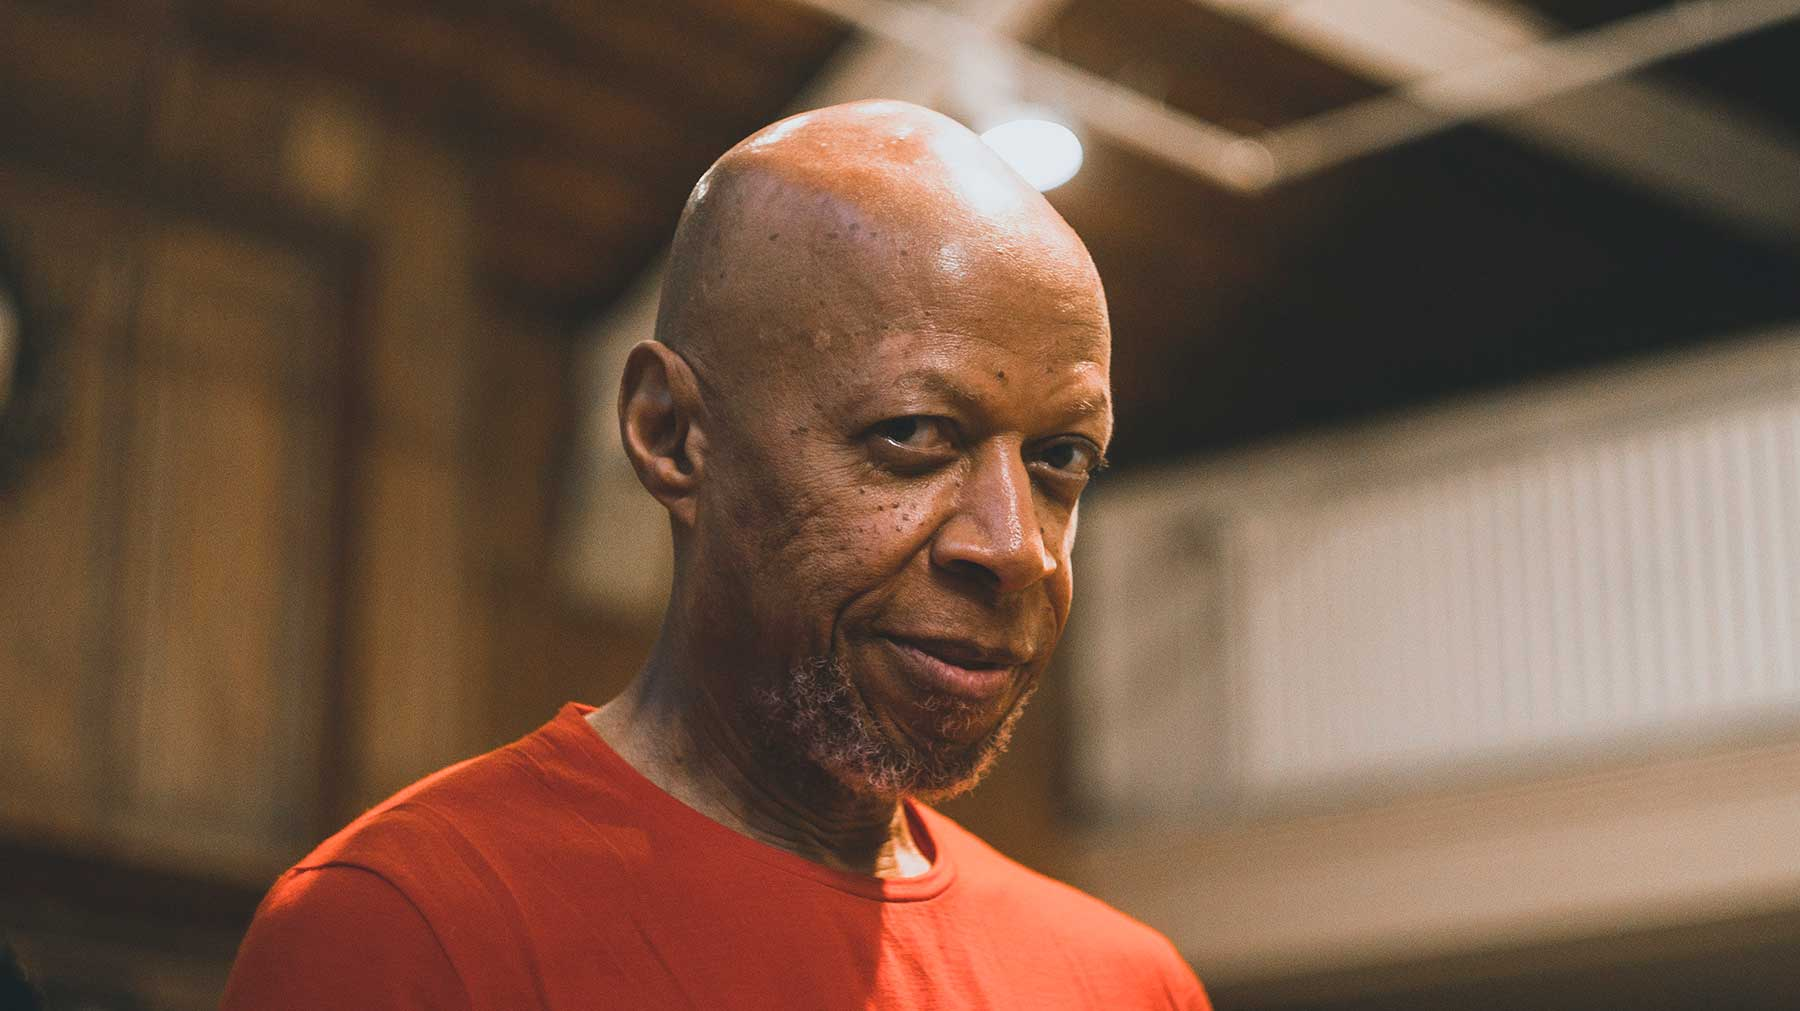 Laraaji: Forever Changes With the release of his new record, Sun Piano, Laraaji is all fun, philosophy and full on happenstance...